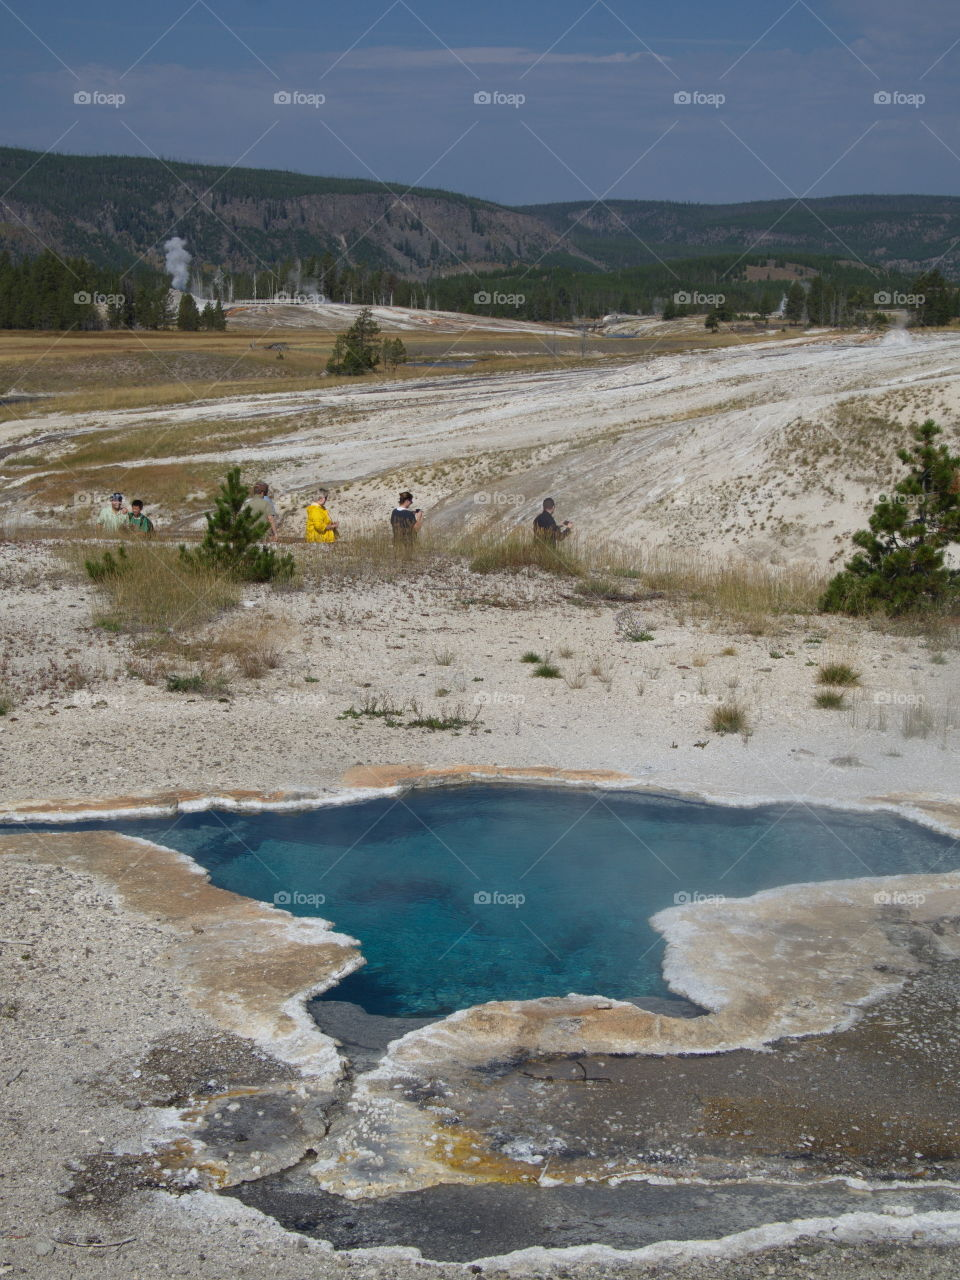 The magnificent turquoise waters of Blue Star Spring on Geyser Hill in Yellowstone National Park in Northern Wyoming on a summer day.